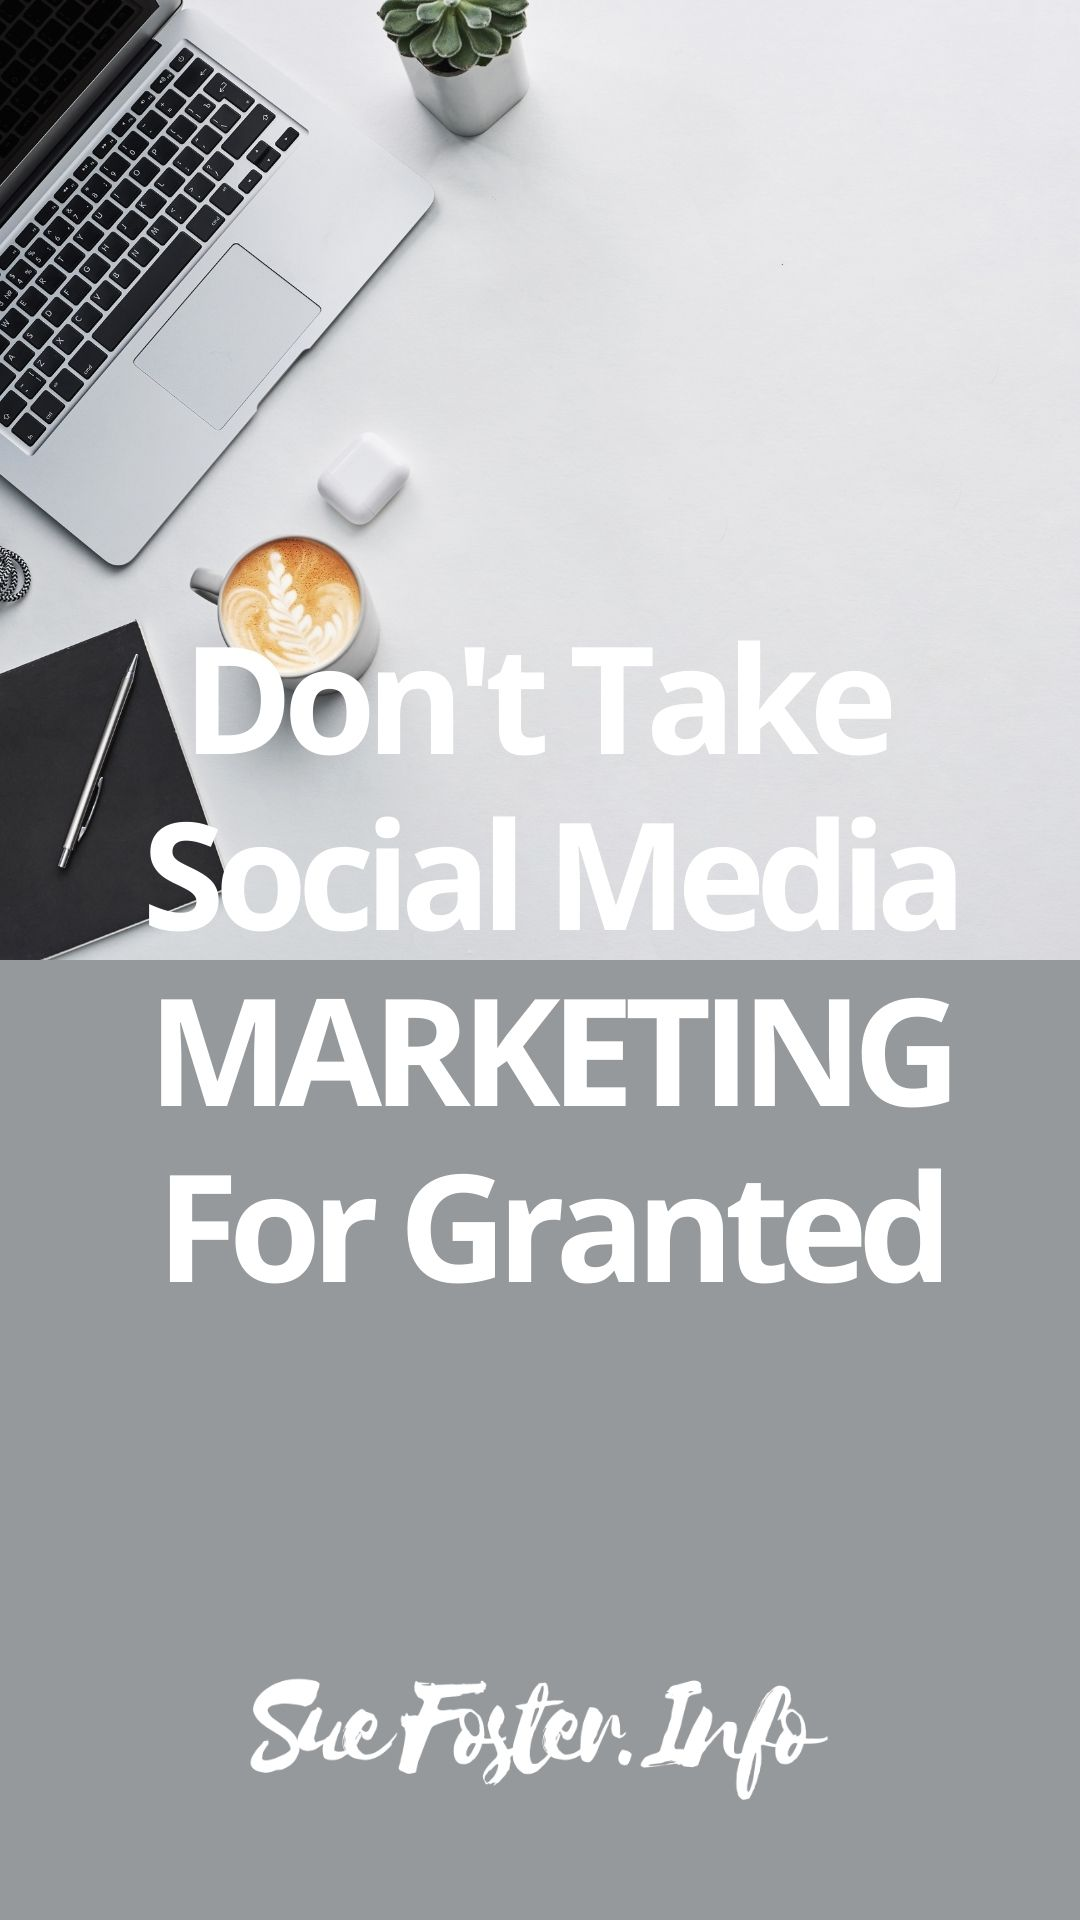 How not to take social media marketing for granted.